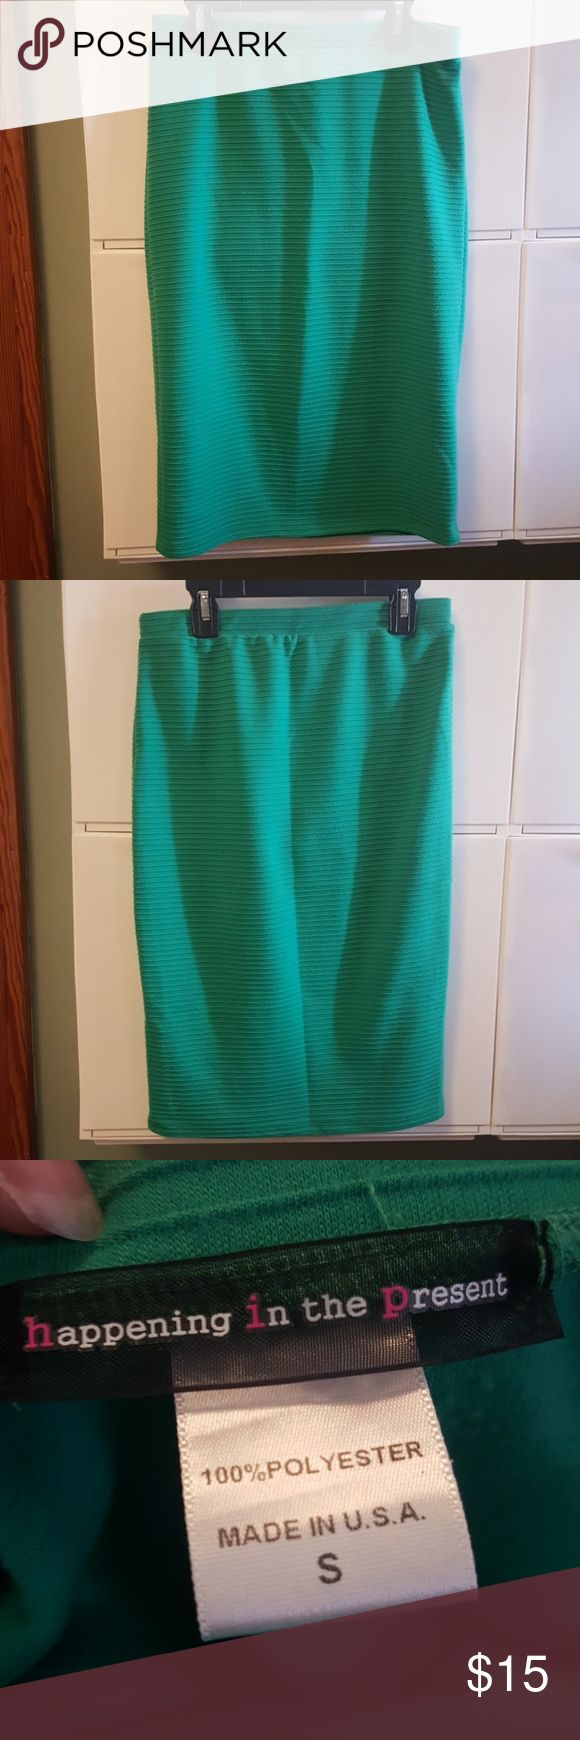 Happening in the present green pencil skirt Good used condition happening in the present green pencil skirt has ridges 100% polyester size small happening in the present Skirts Pencil